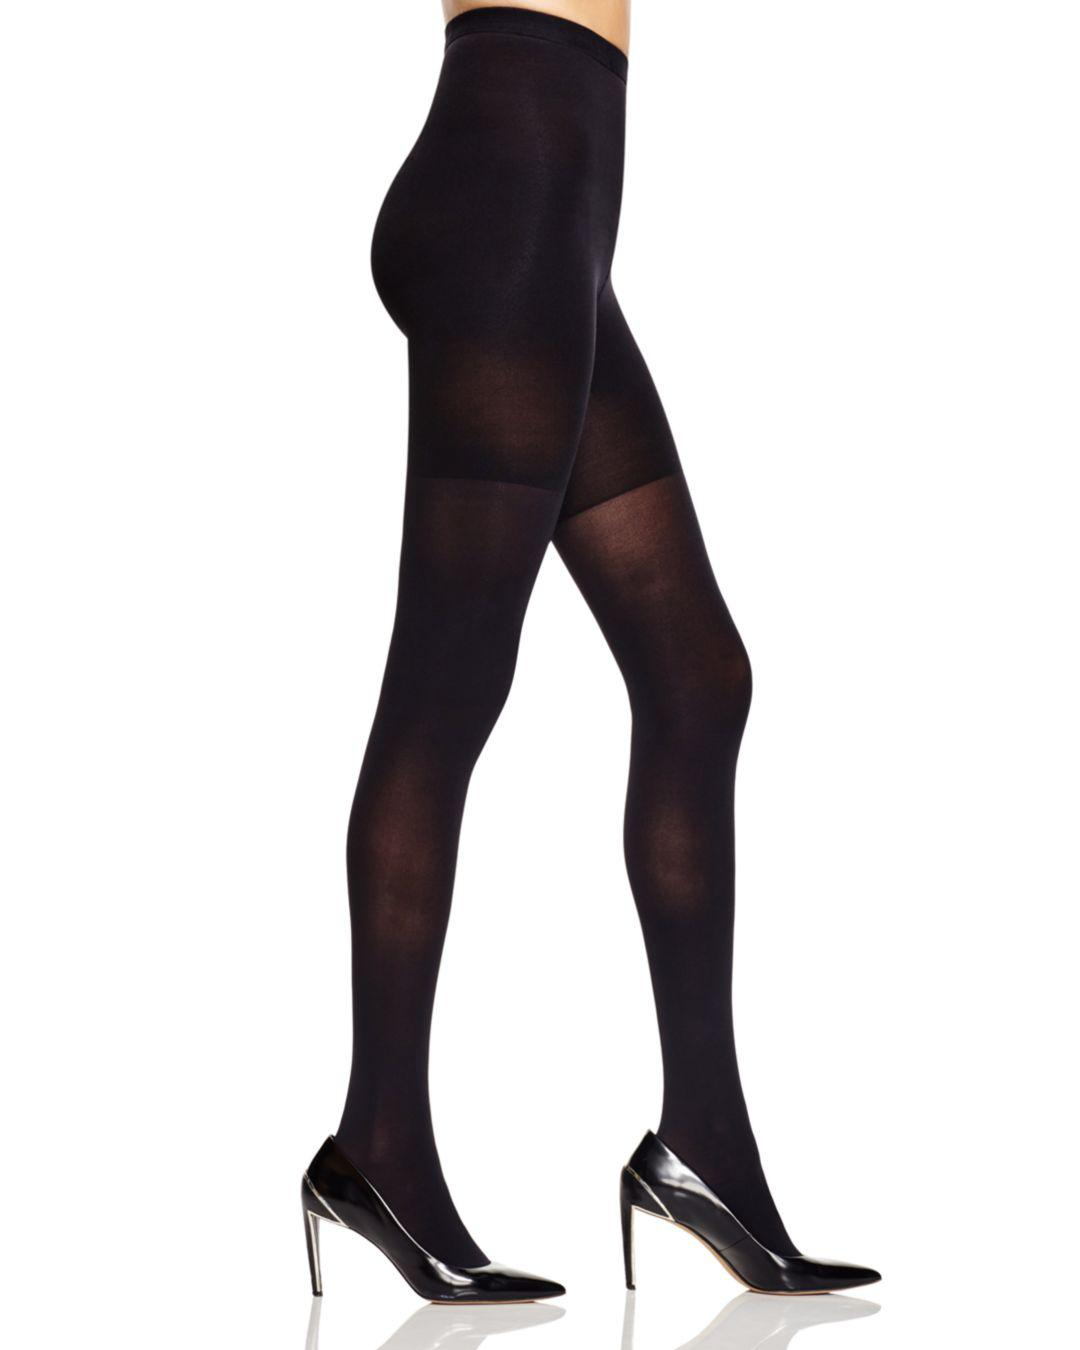 849c5a082c6 Spanx High-waisted Luxe Leg Tights in Black - Lyst